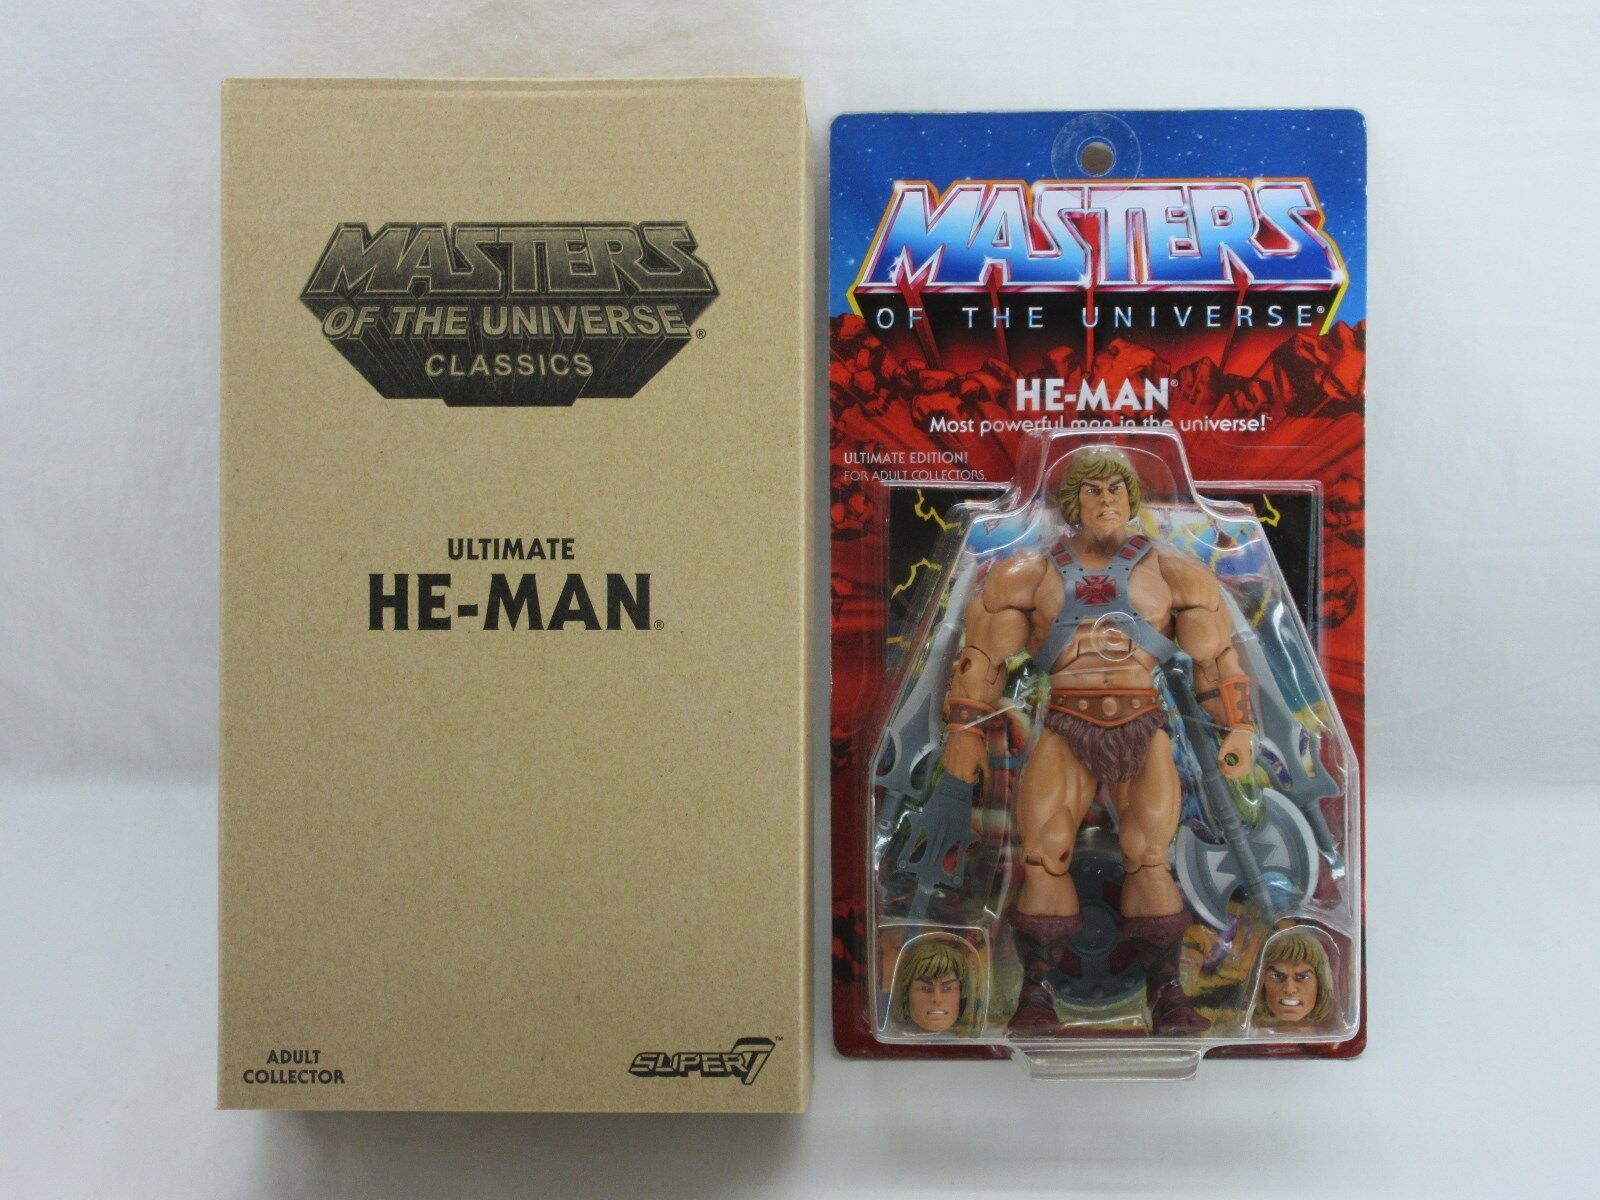 MOTUC,ULTIMATE HE-MAN,SUPER 7,MASTERS OF UNIVERSE,CLASSICS,Sealed,MOC